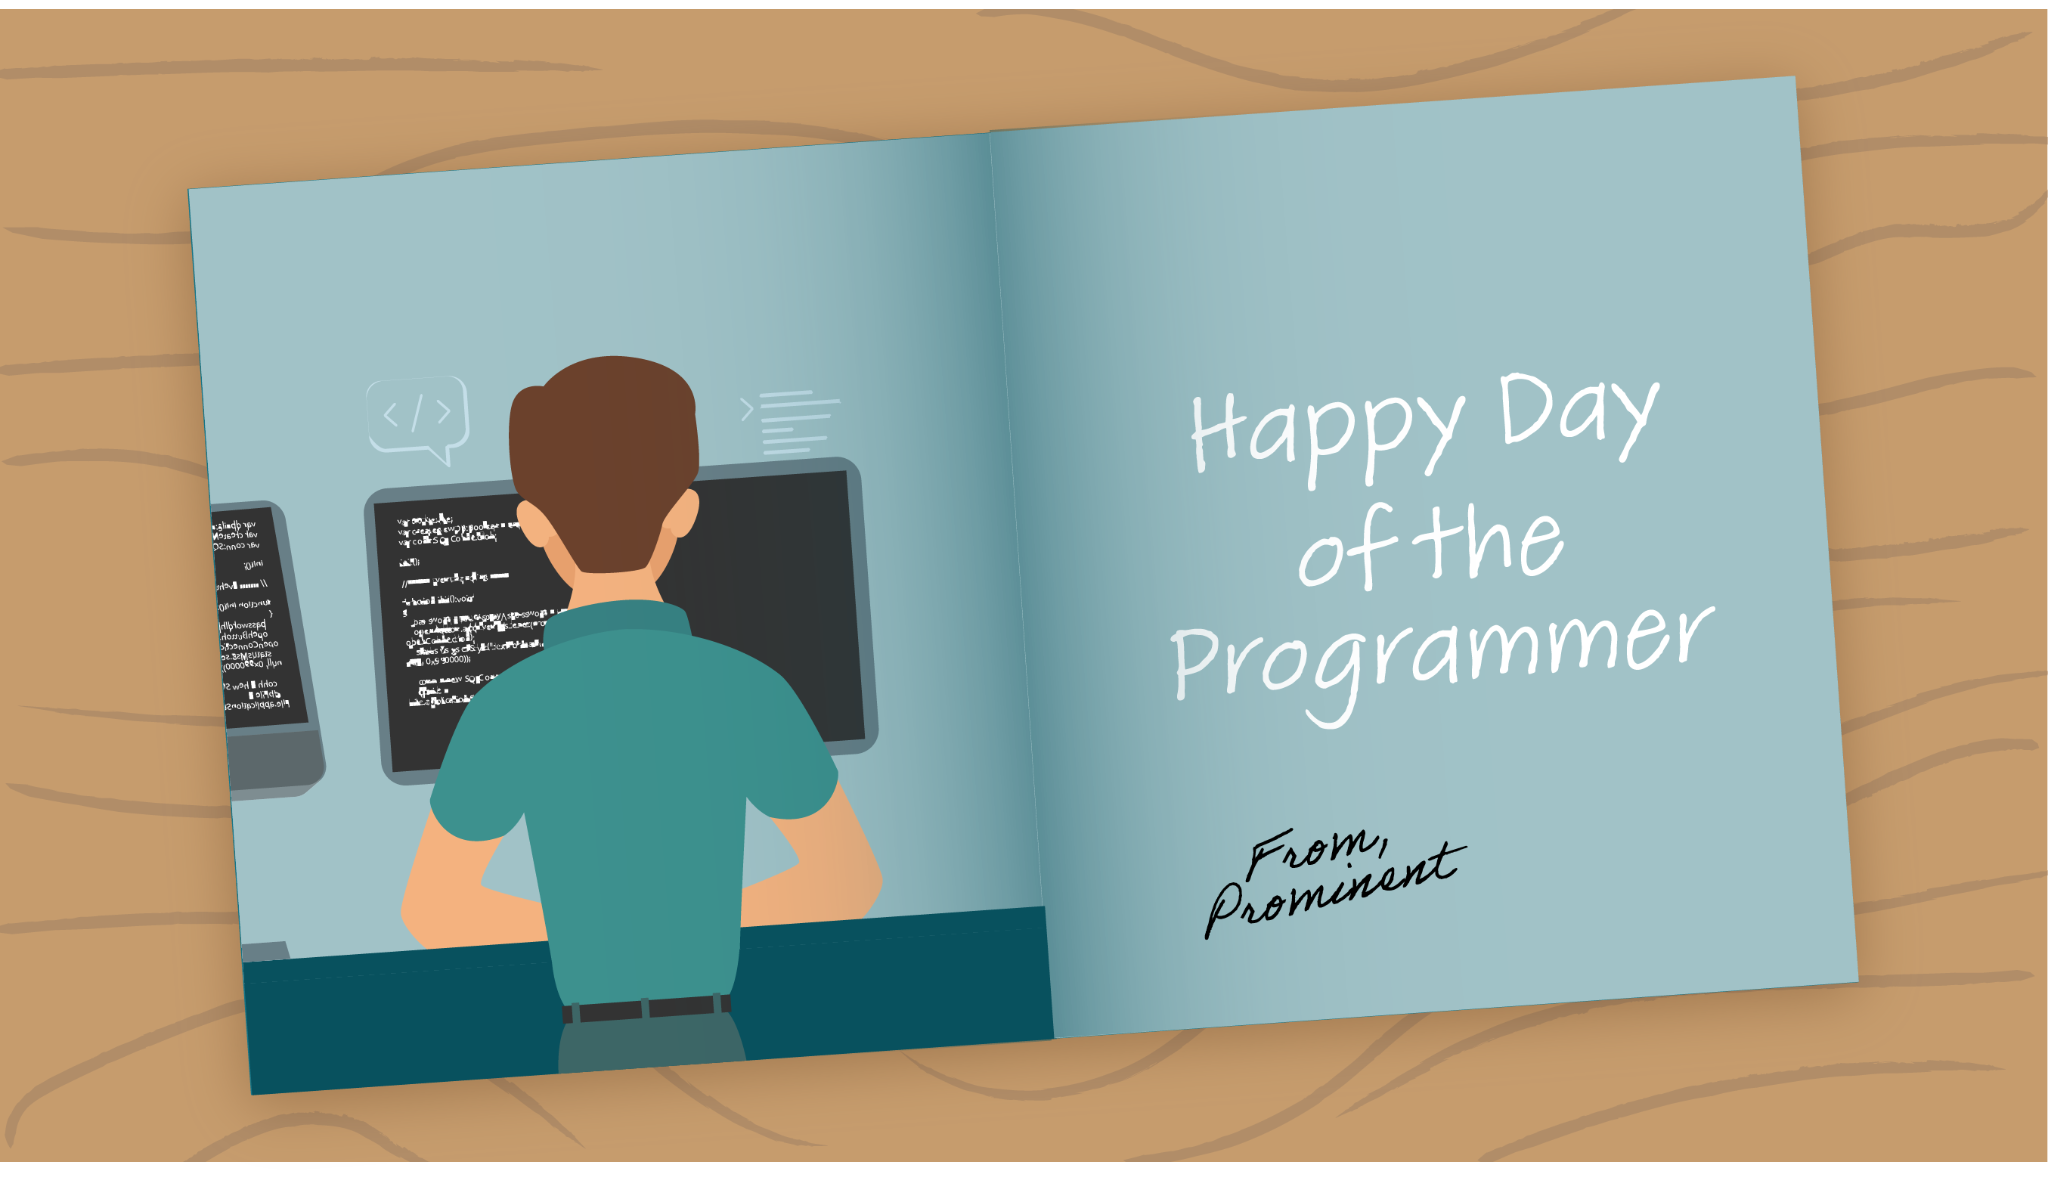 Happy Day of the Programmer from Prominent